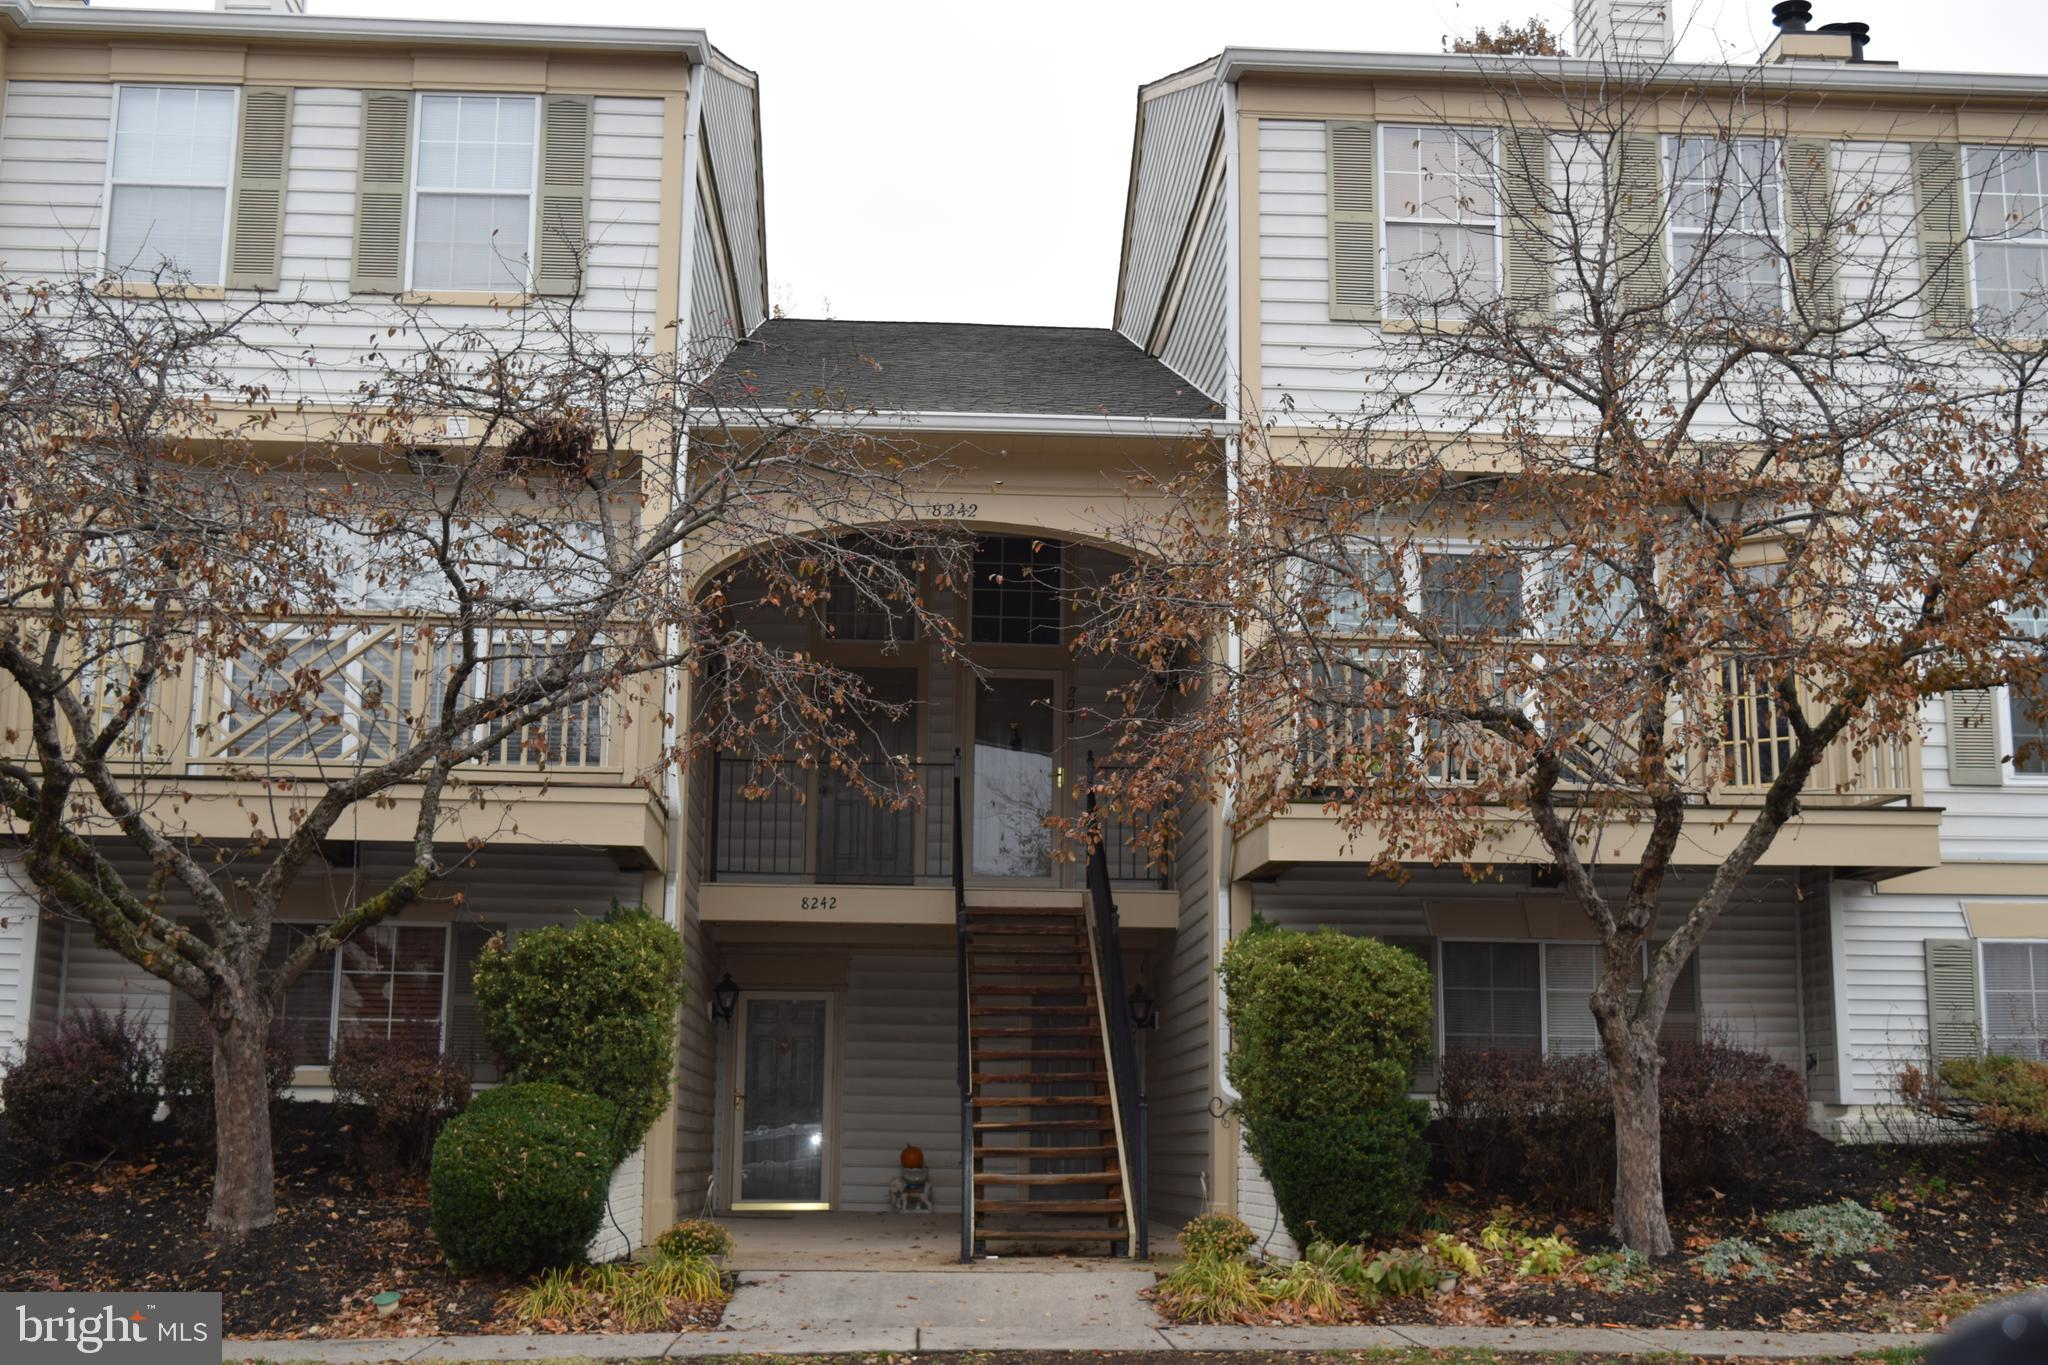 RUN don't walk to this delightful 2-Level 2 Bedroom Condo in Bull Run!  New appliances, Water Heater